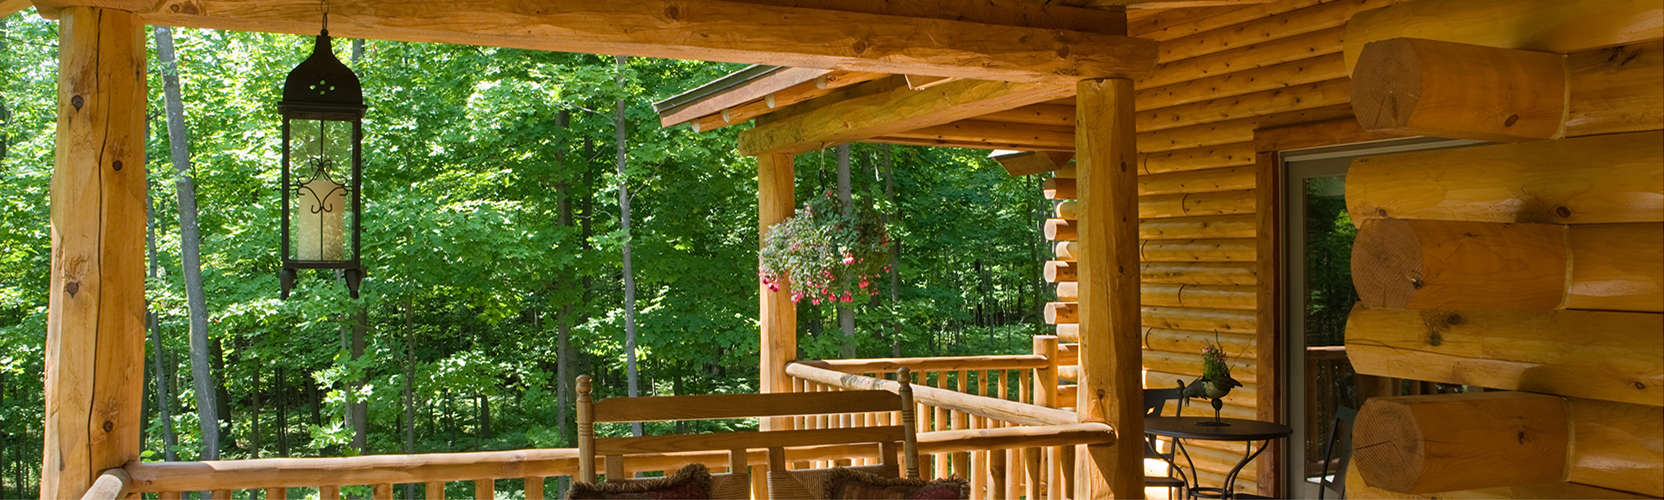 Cedar & Log Siding for Sale | Wood Paneling, Timber Trusses